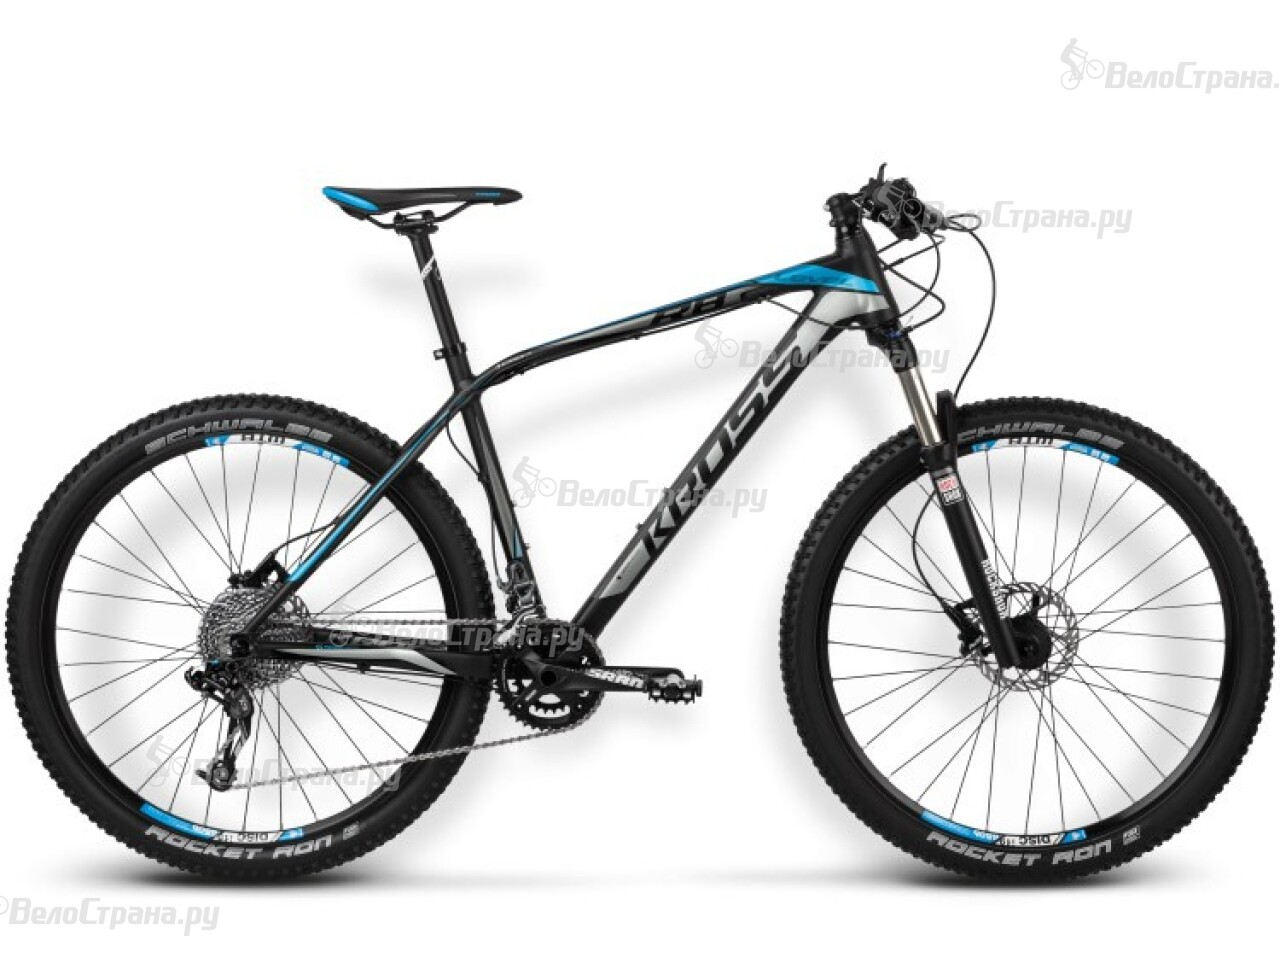 Велосипед Kross Level R8 (2015) велосипед schwinn streamliner 1 step thru 2014